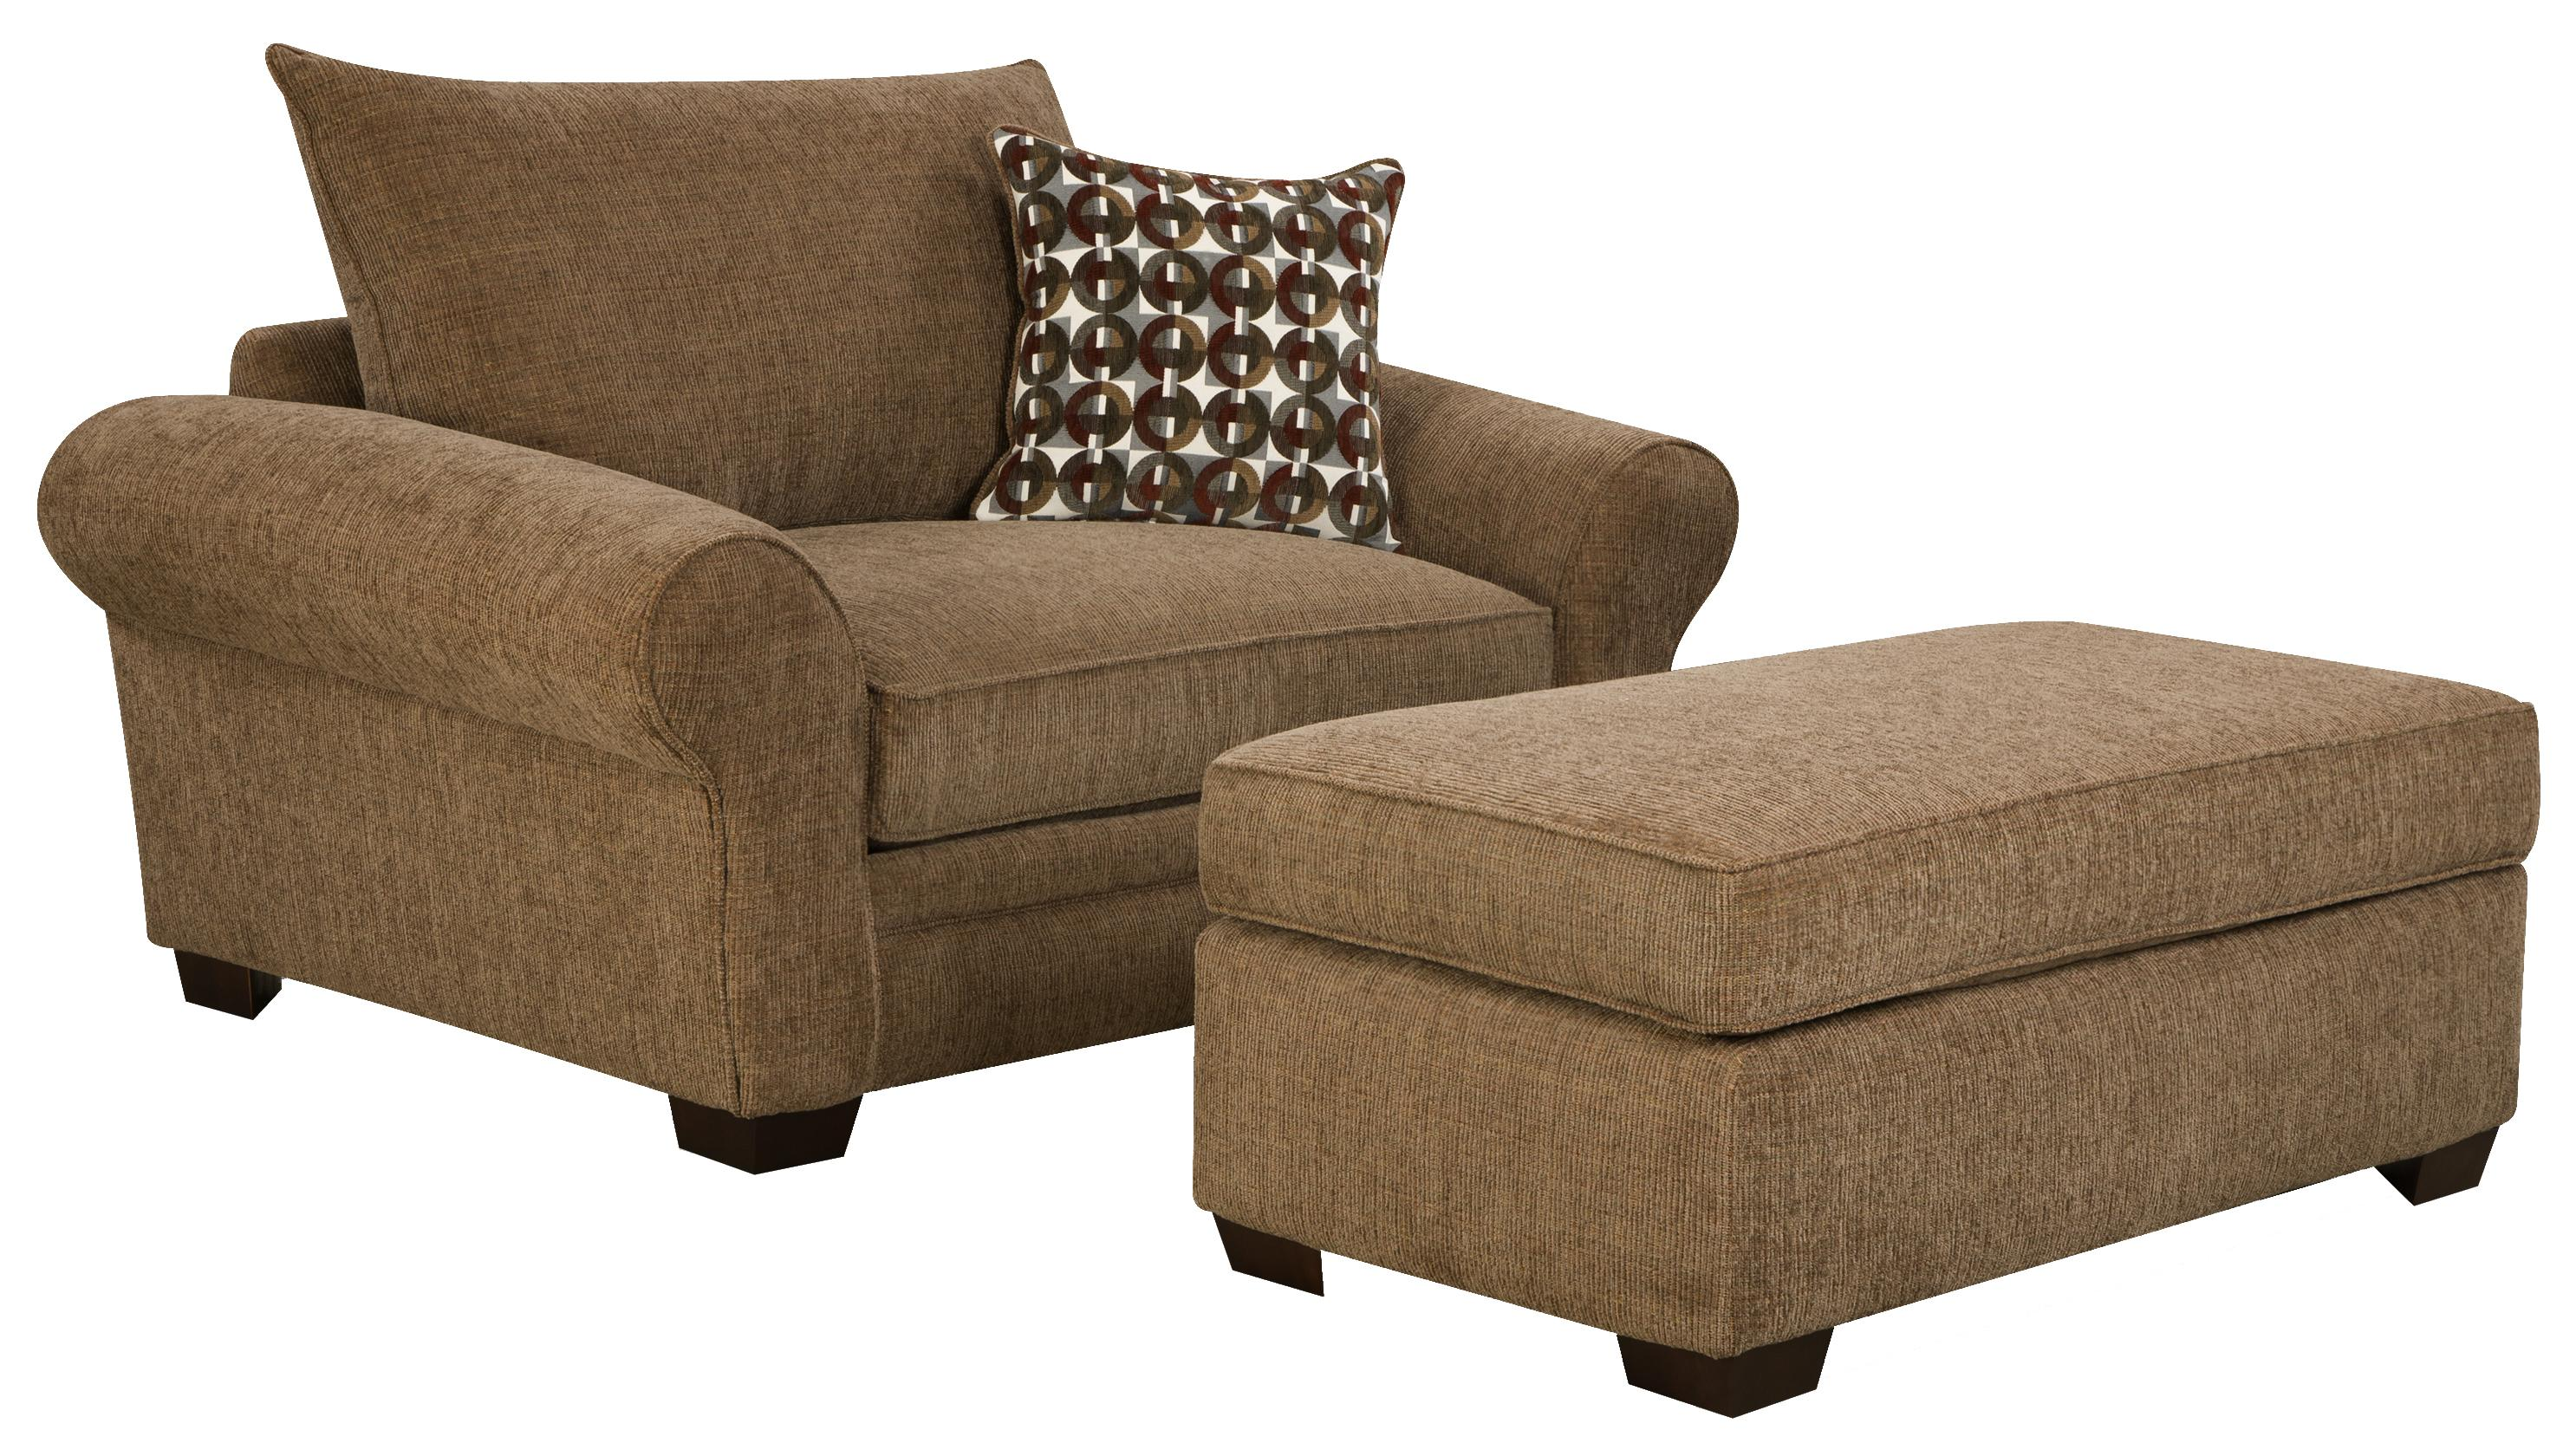 Oversized Comfy Chair 5460 Extra Large Chair And A Half And Ottoman Set For Casual